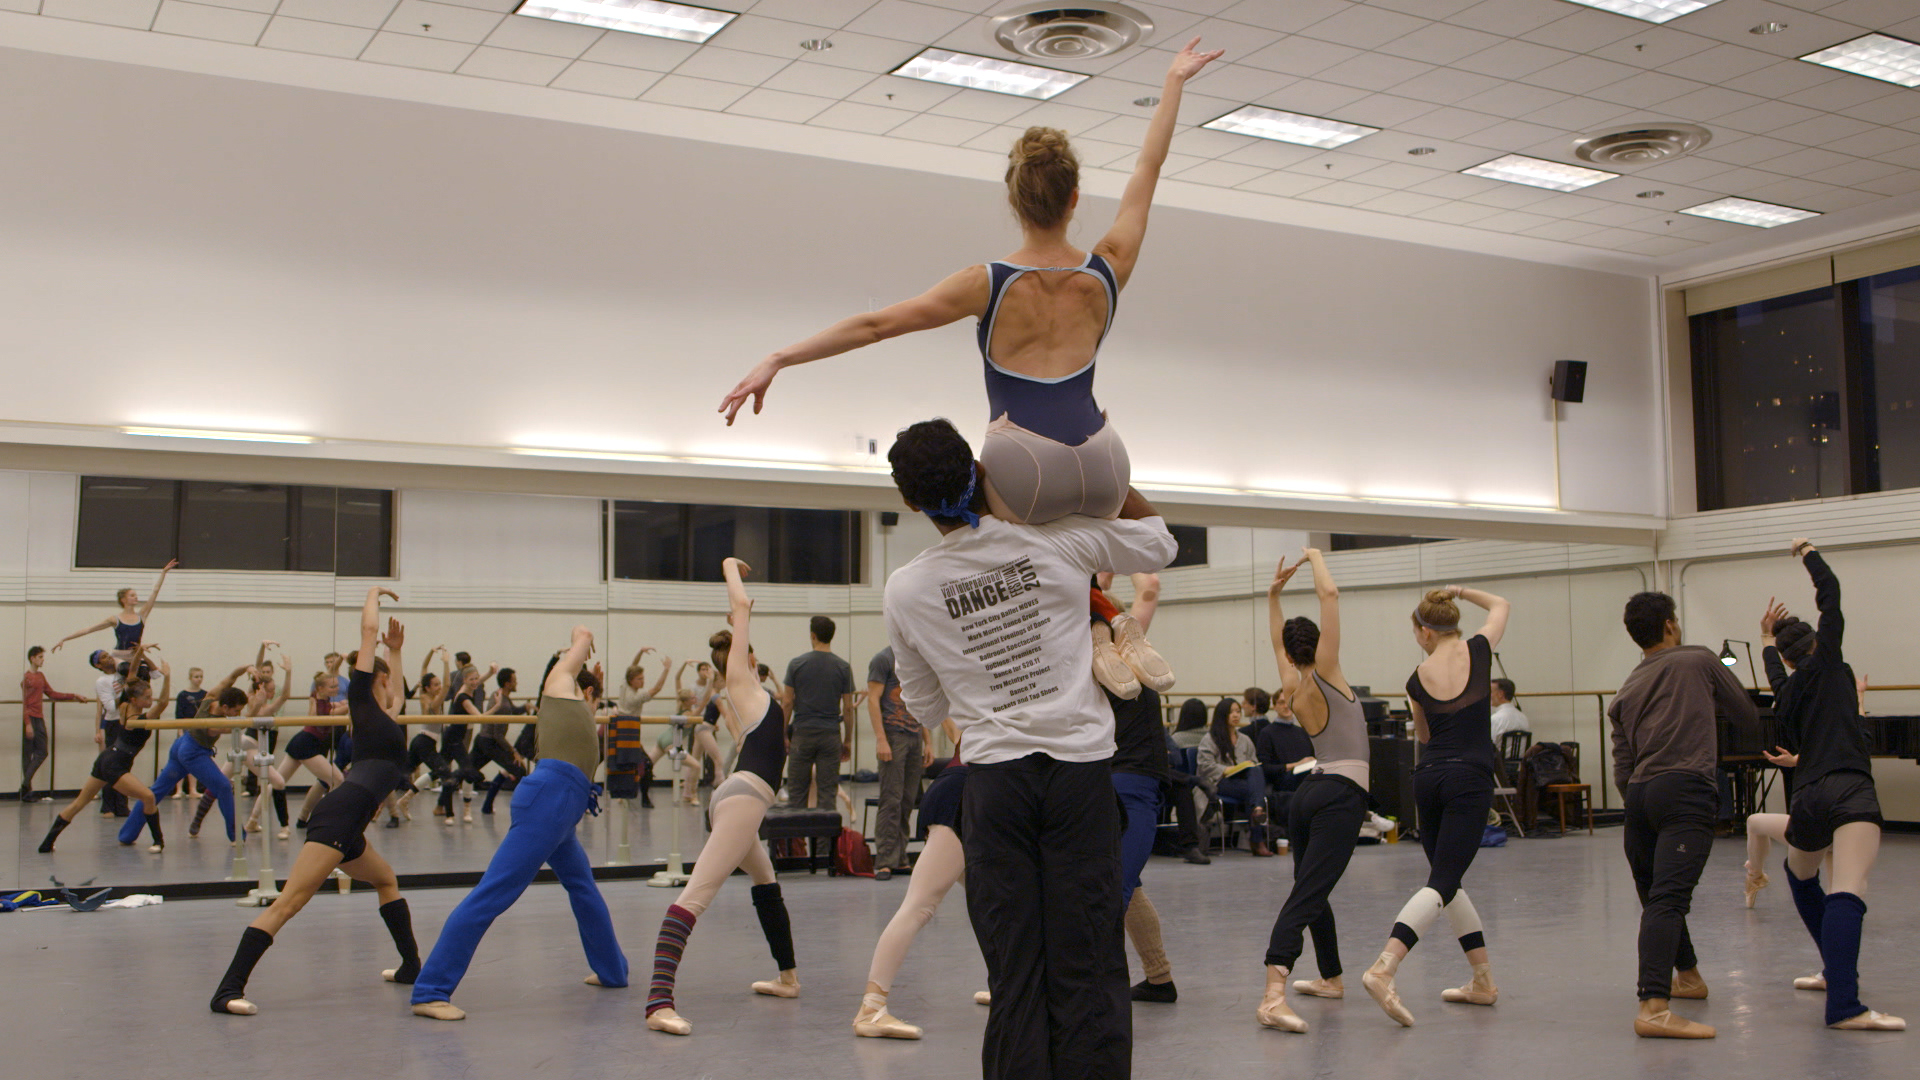 A scene from Justin Peck's Ballet 422. Image via Magnolia Pictures